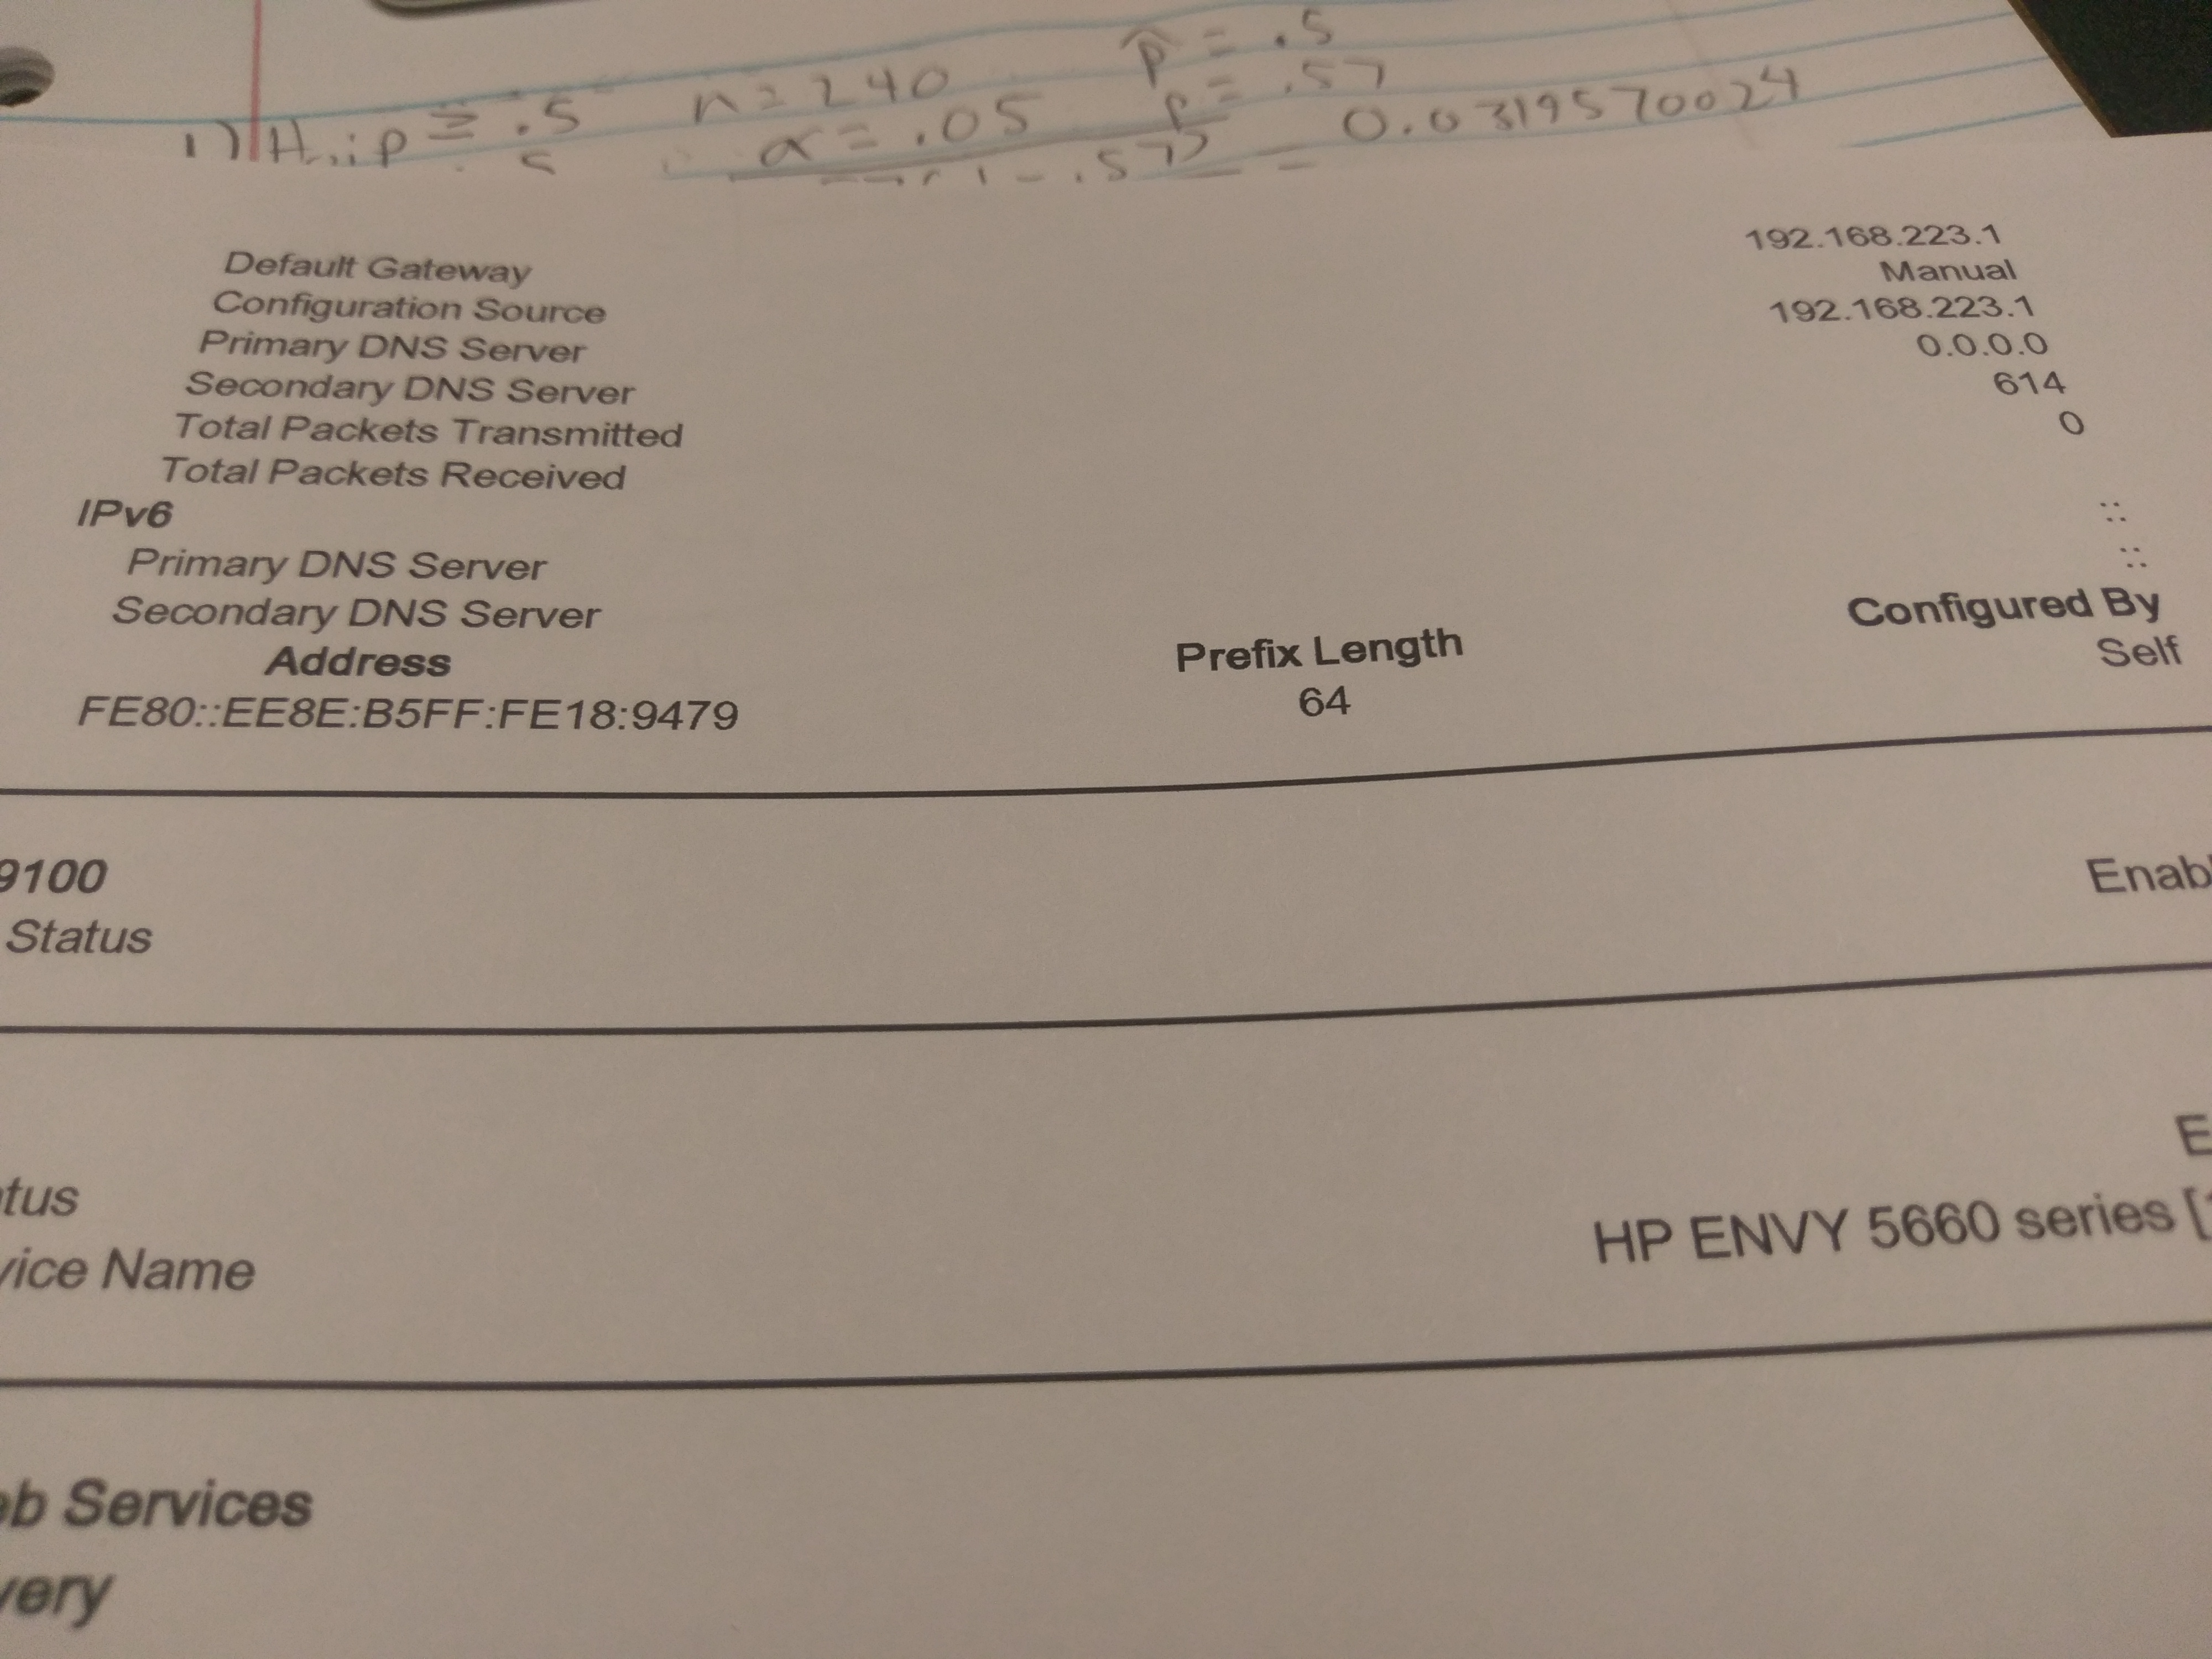 I M Trying To Find A Printer Claim Code From My Hp Envy